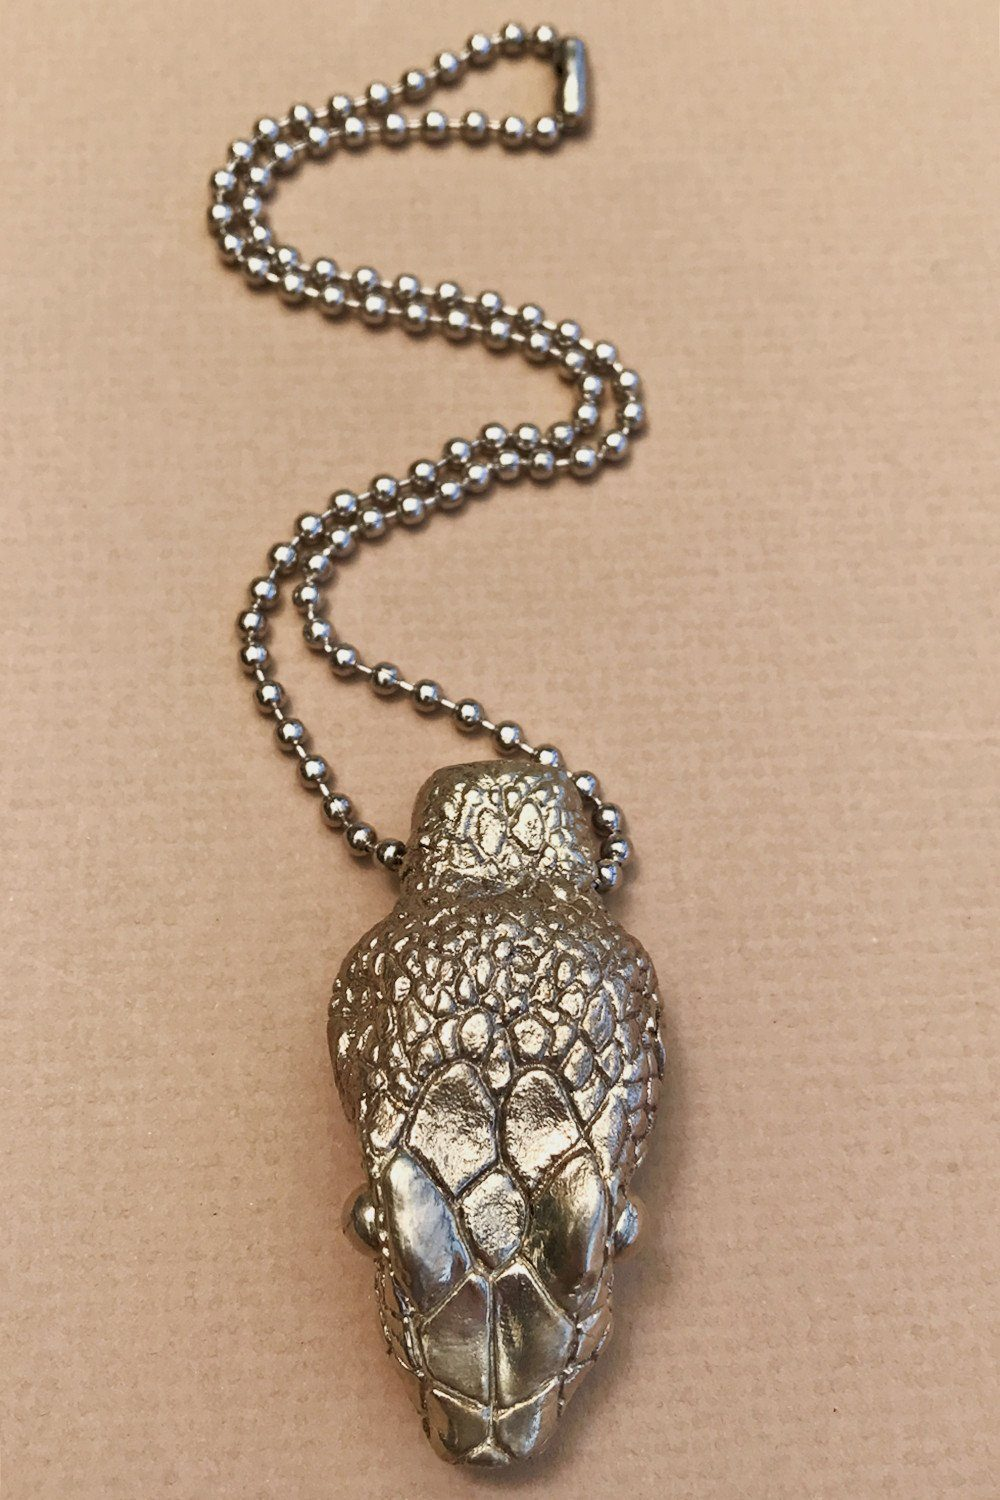 PRE-ORDER Serpents Rise Talisman: Solid White Bronze Snake Head Pendant On Ball Chain by Cult Sisters, Jewelry, cult sisters, BACKBITE